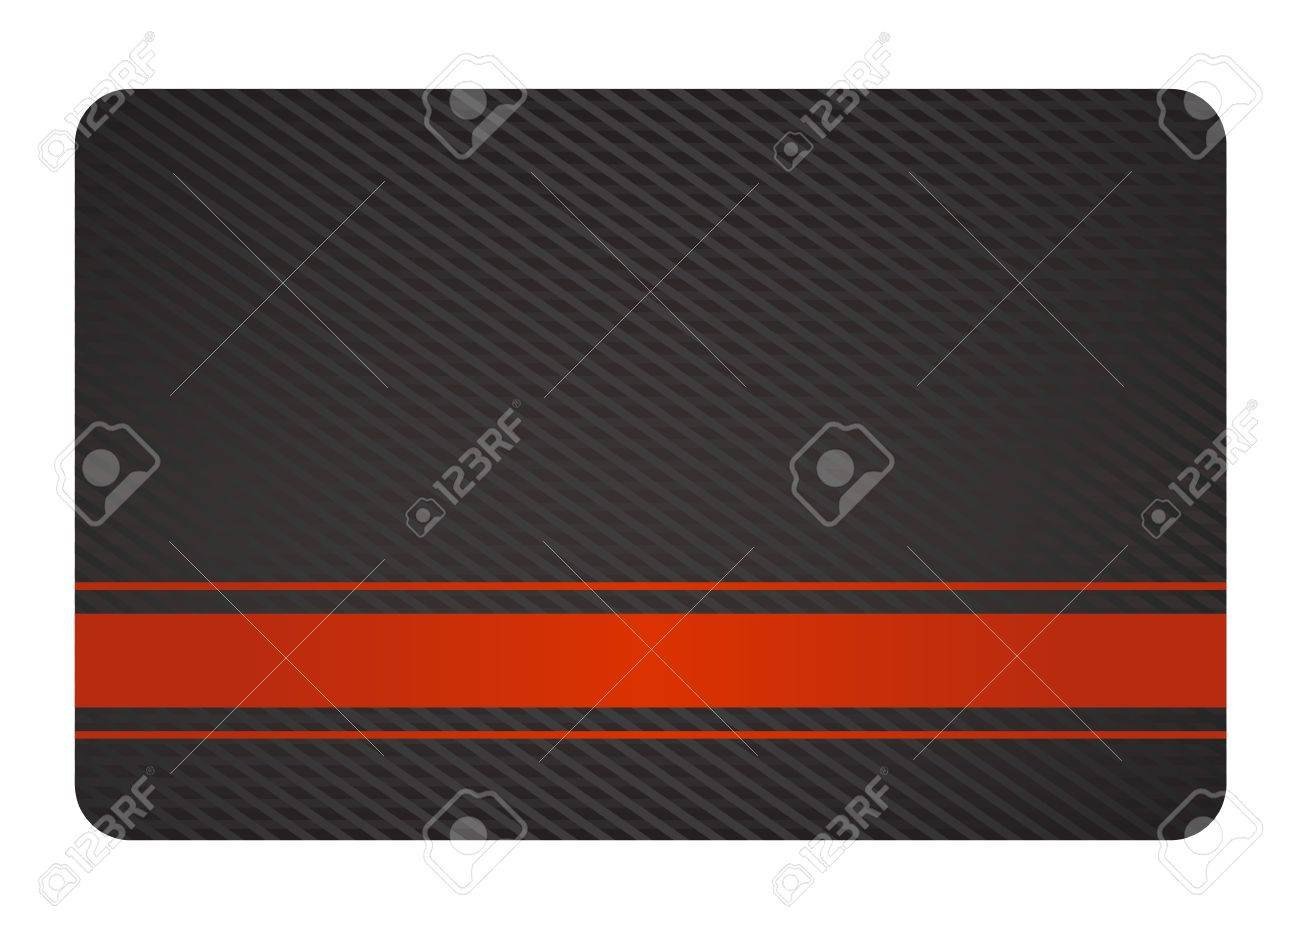 Black Business Card with Texture and Red Label Stock Vector - 16823077